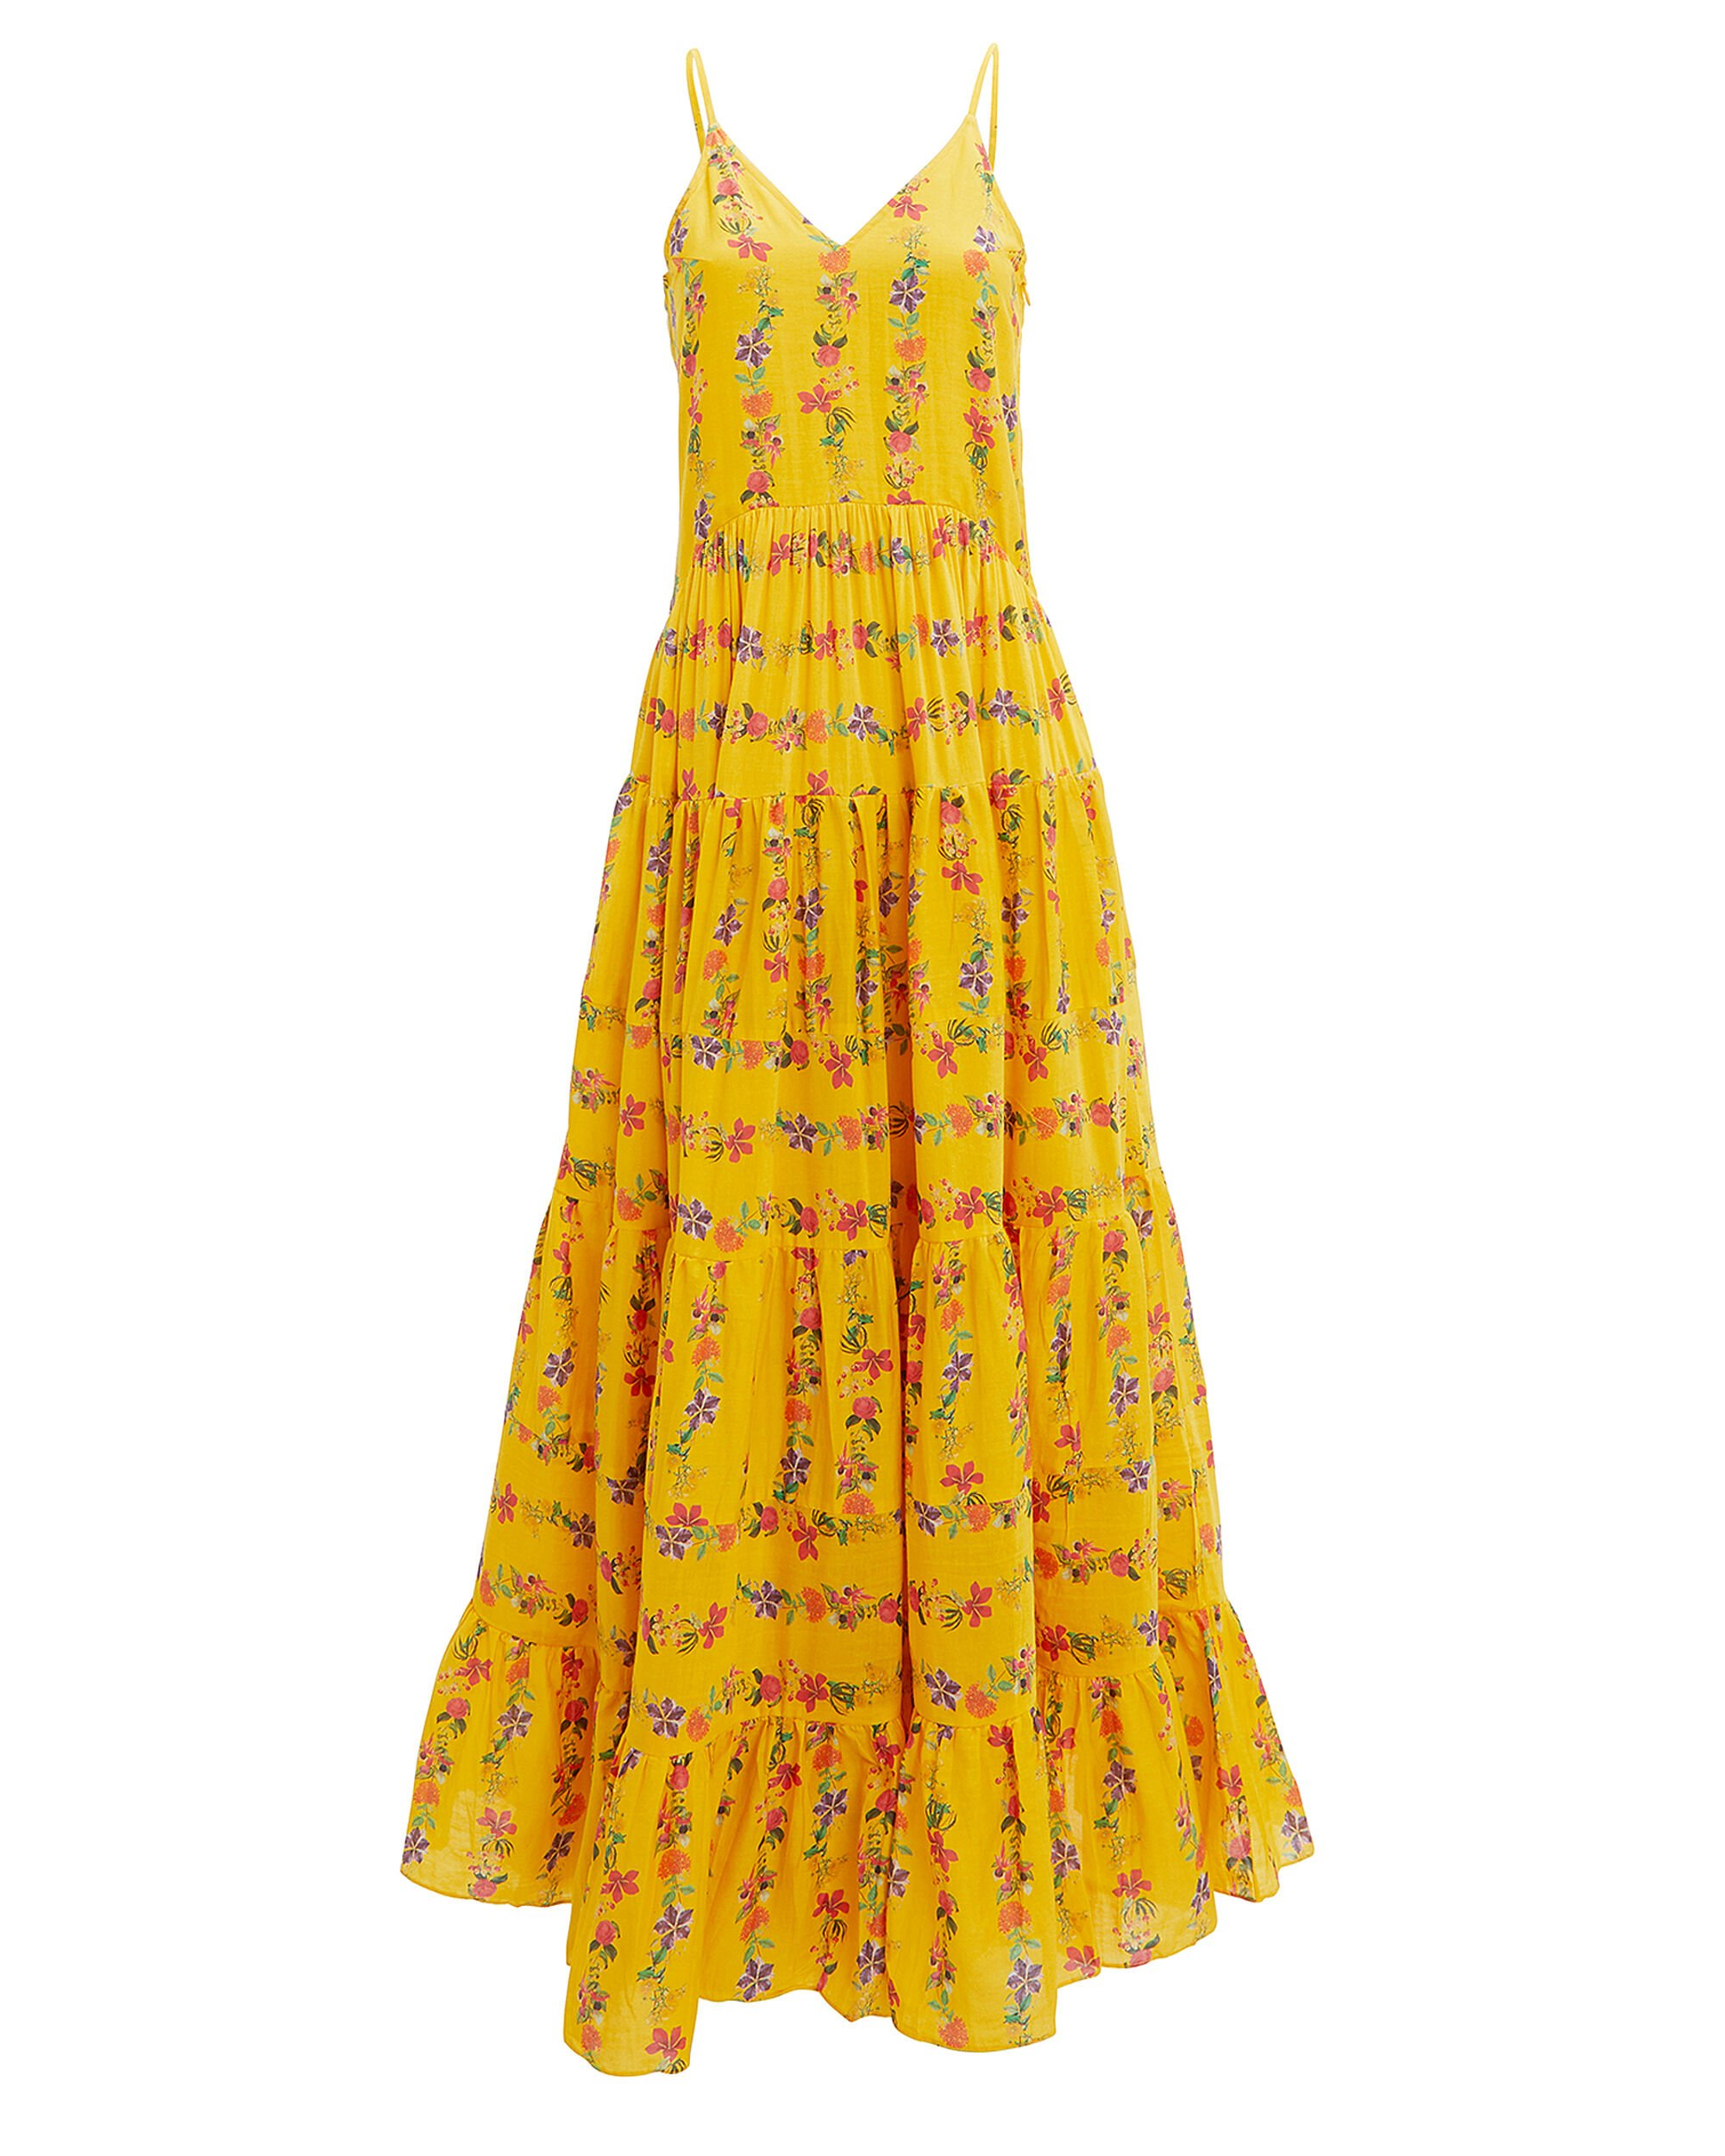 Marietta Maxi Dress, YELLOW/FLORAL, hi-res